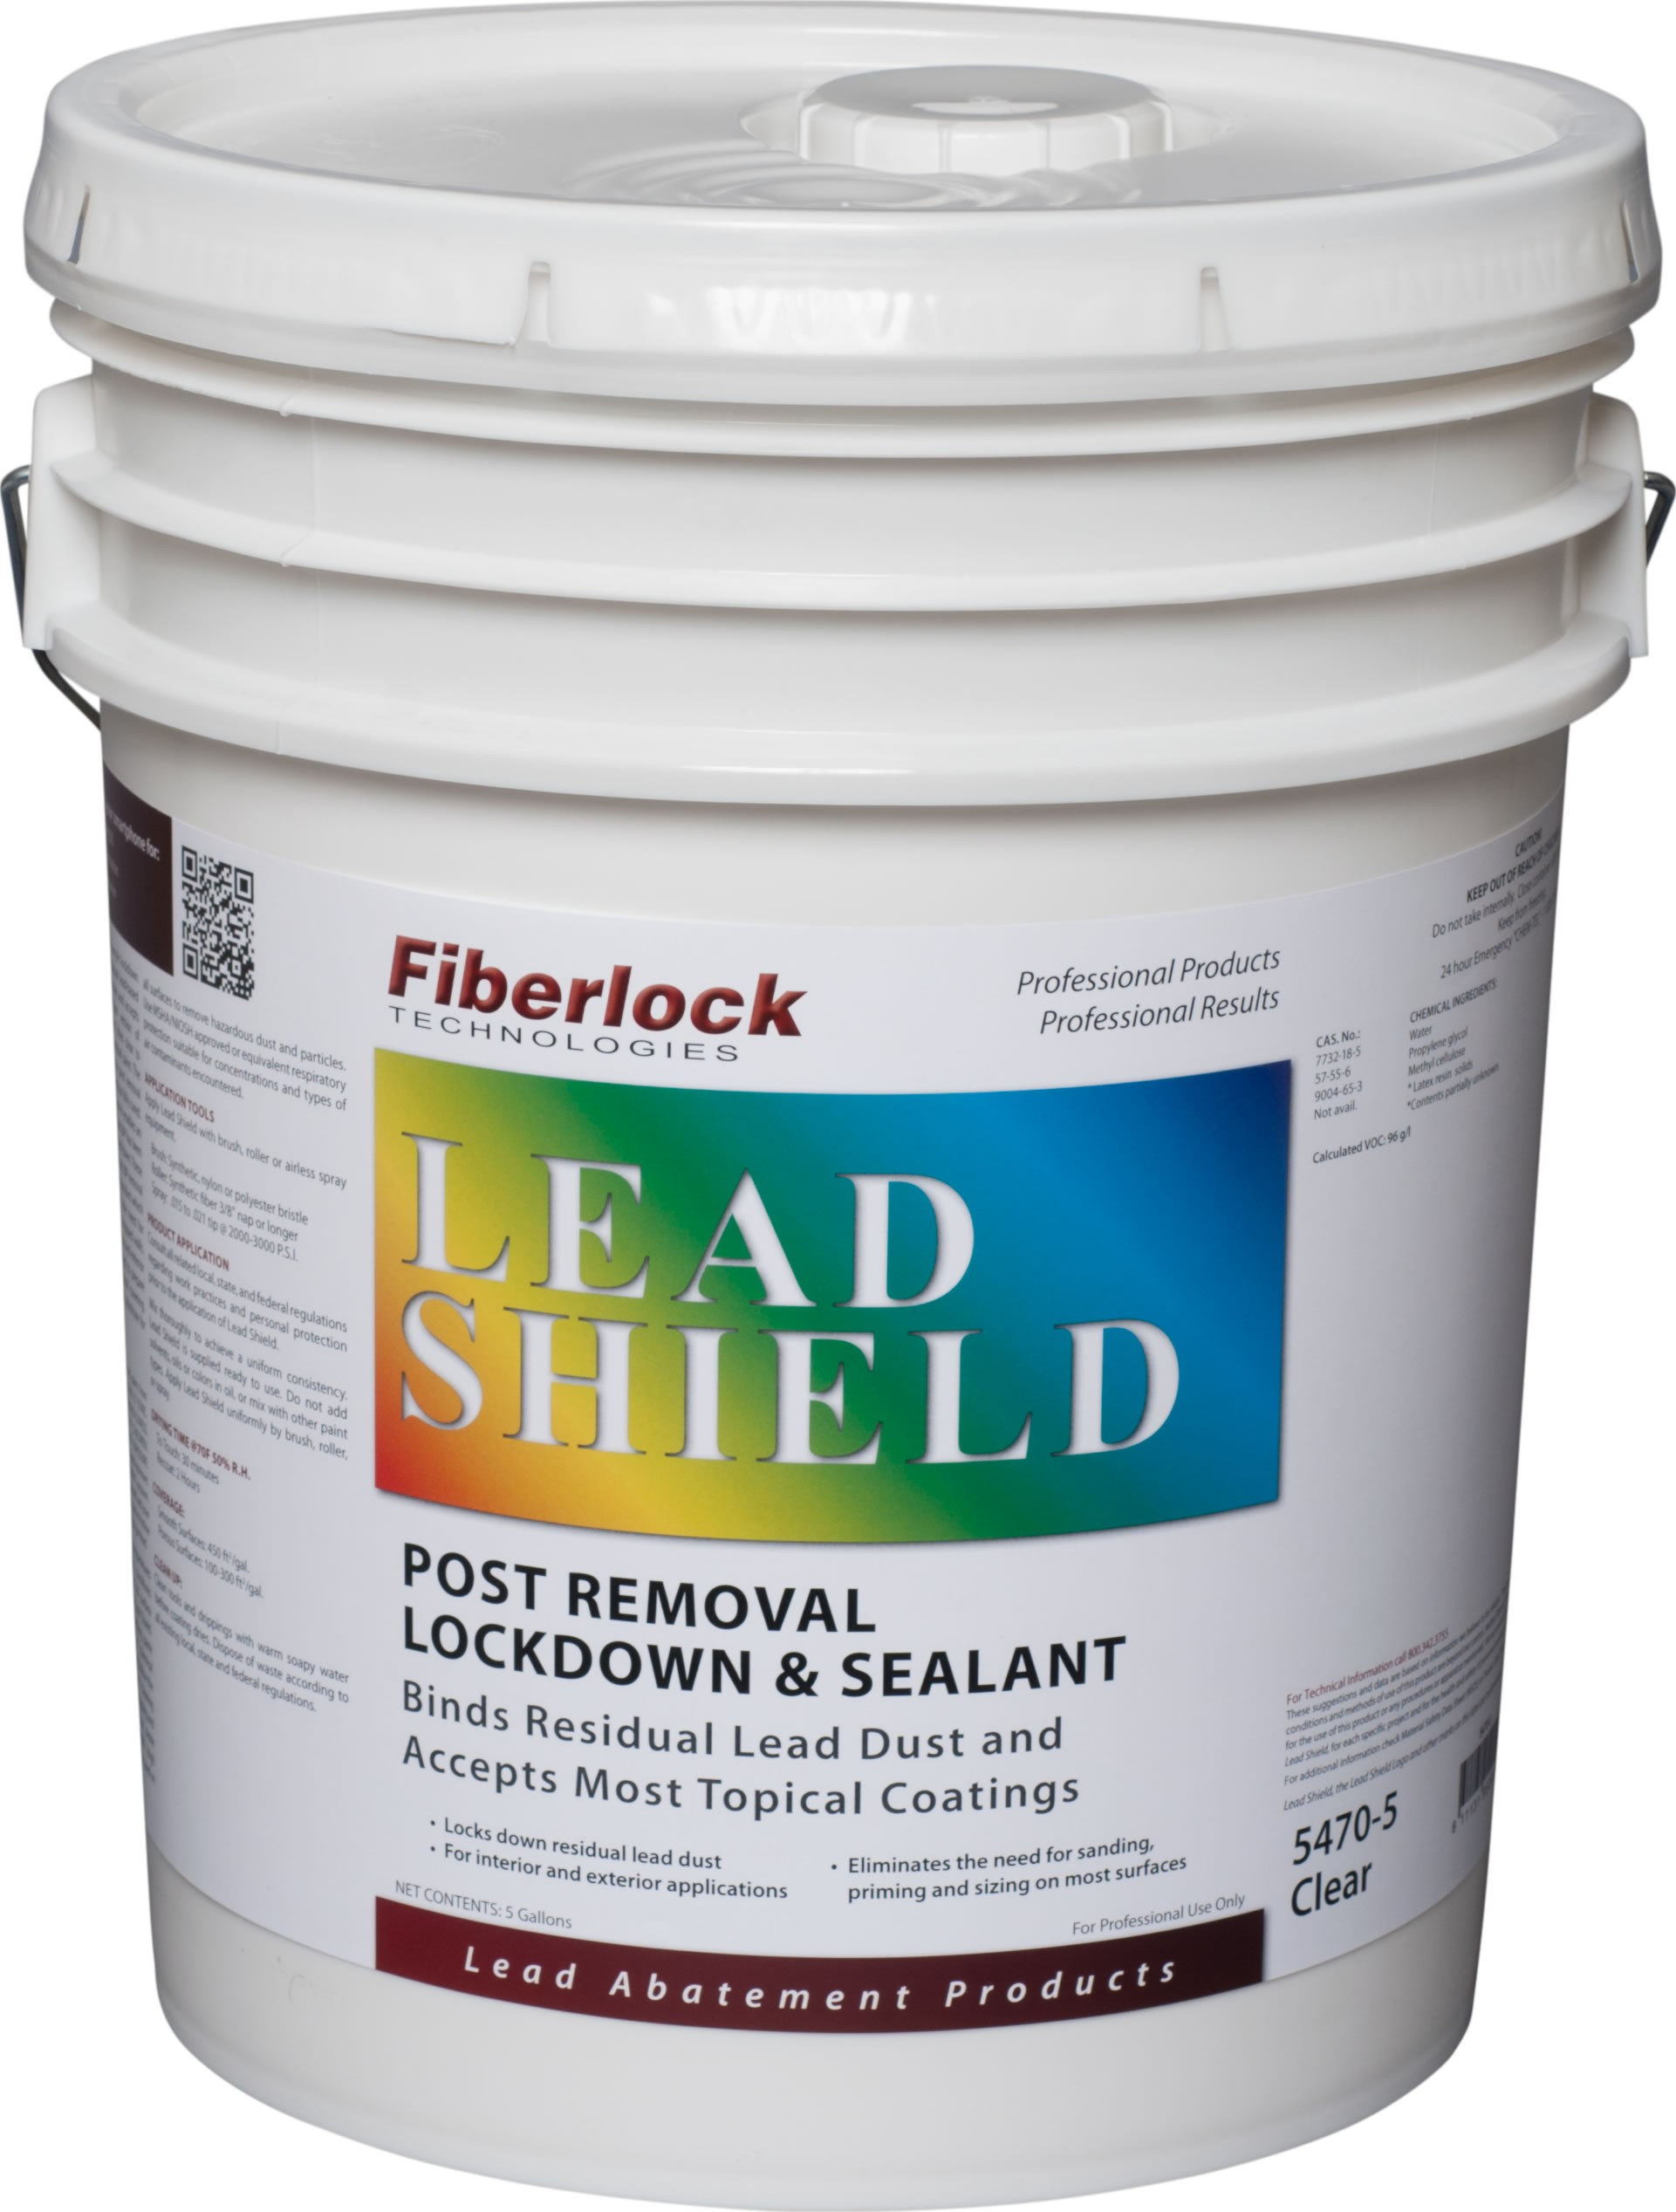 Fiberlock Lead Shield - Post Removal Lockdown (5 gal.)